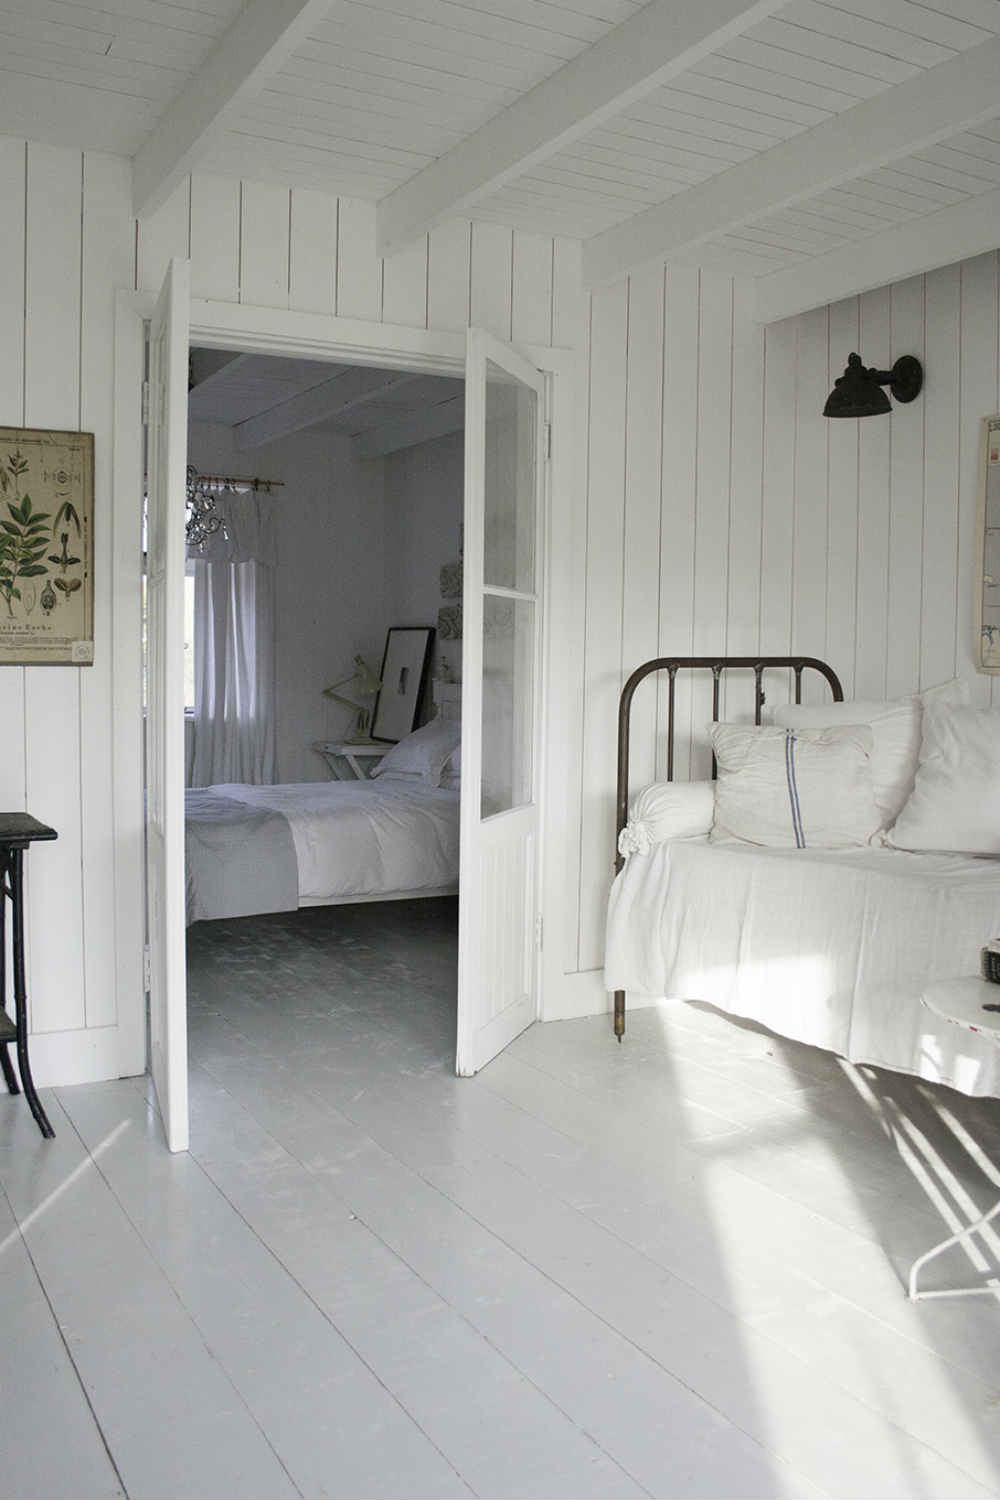 Camber Sands Cottage - Day bed to bedroom